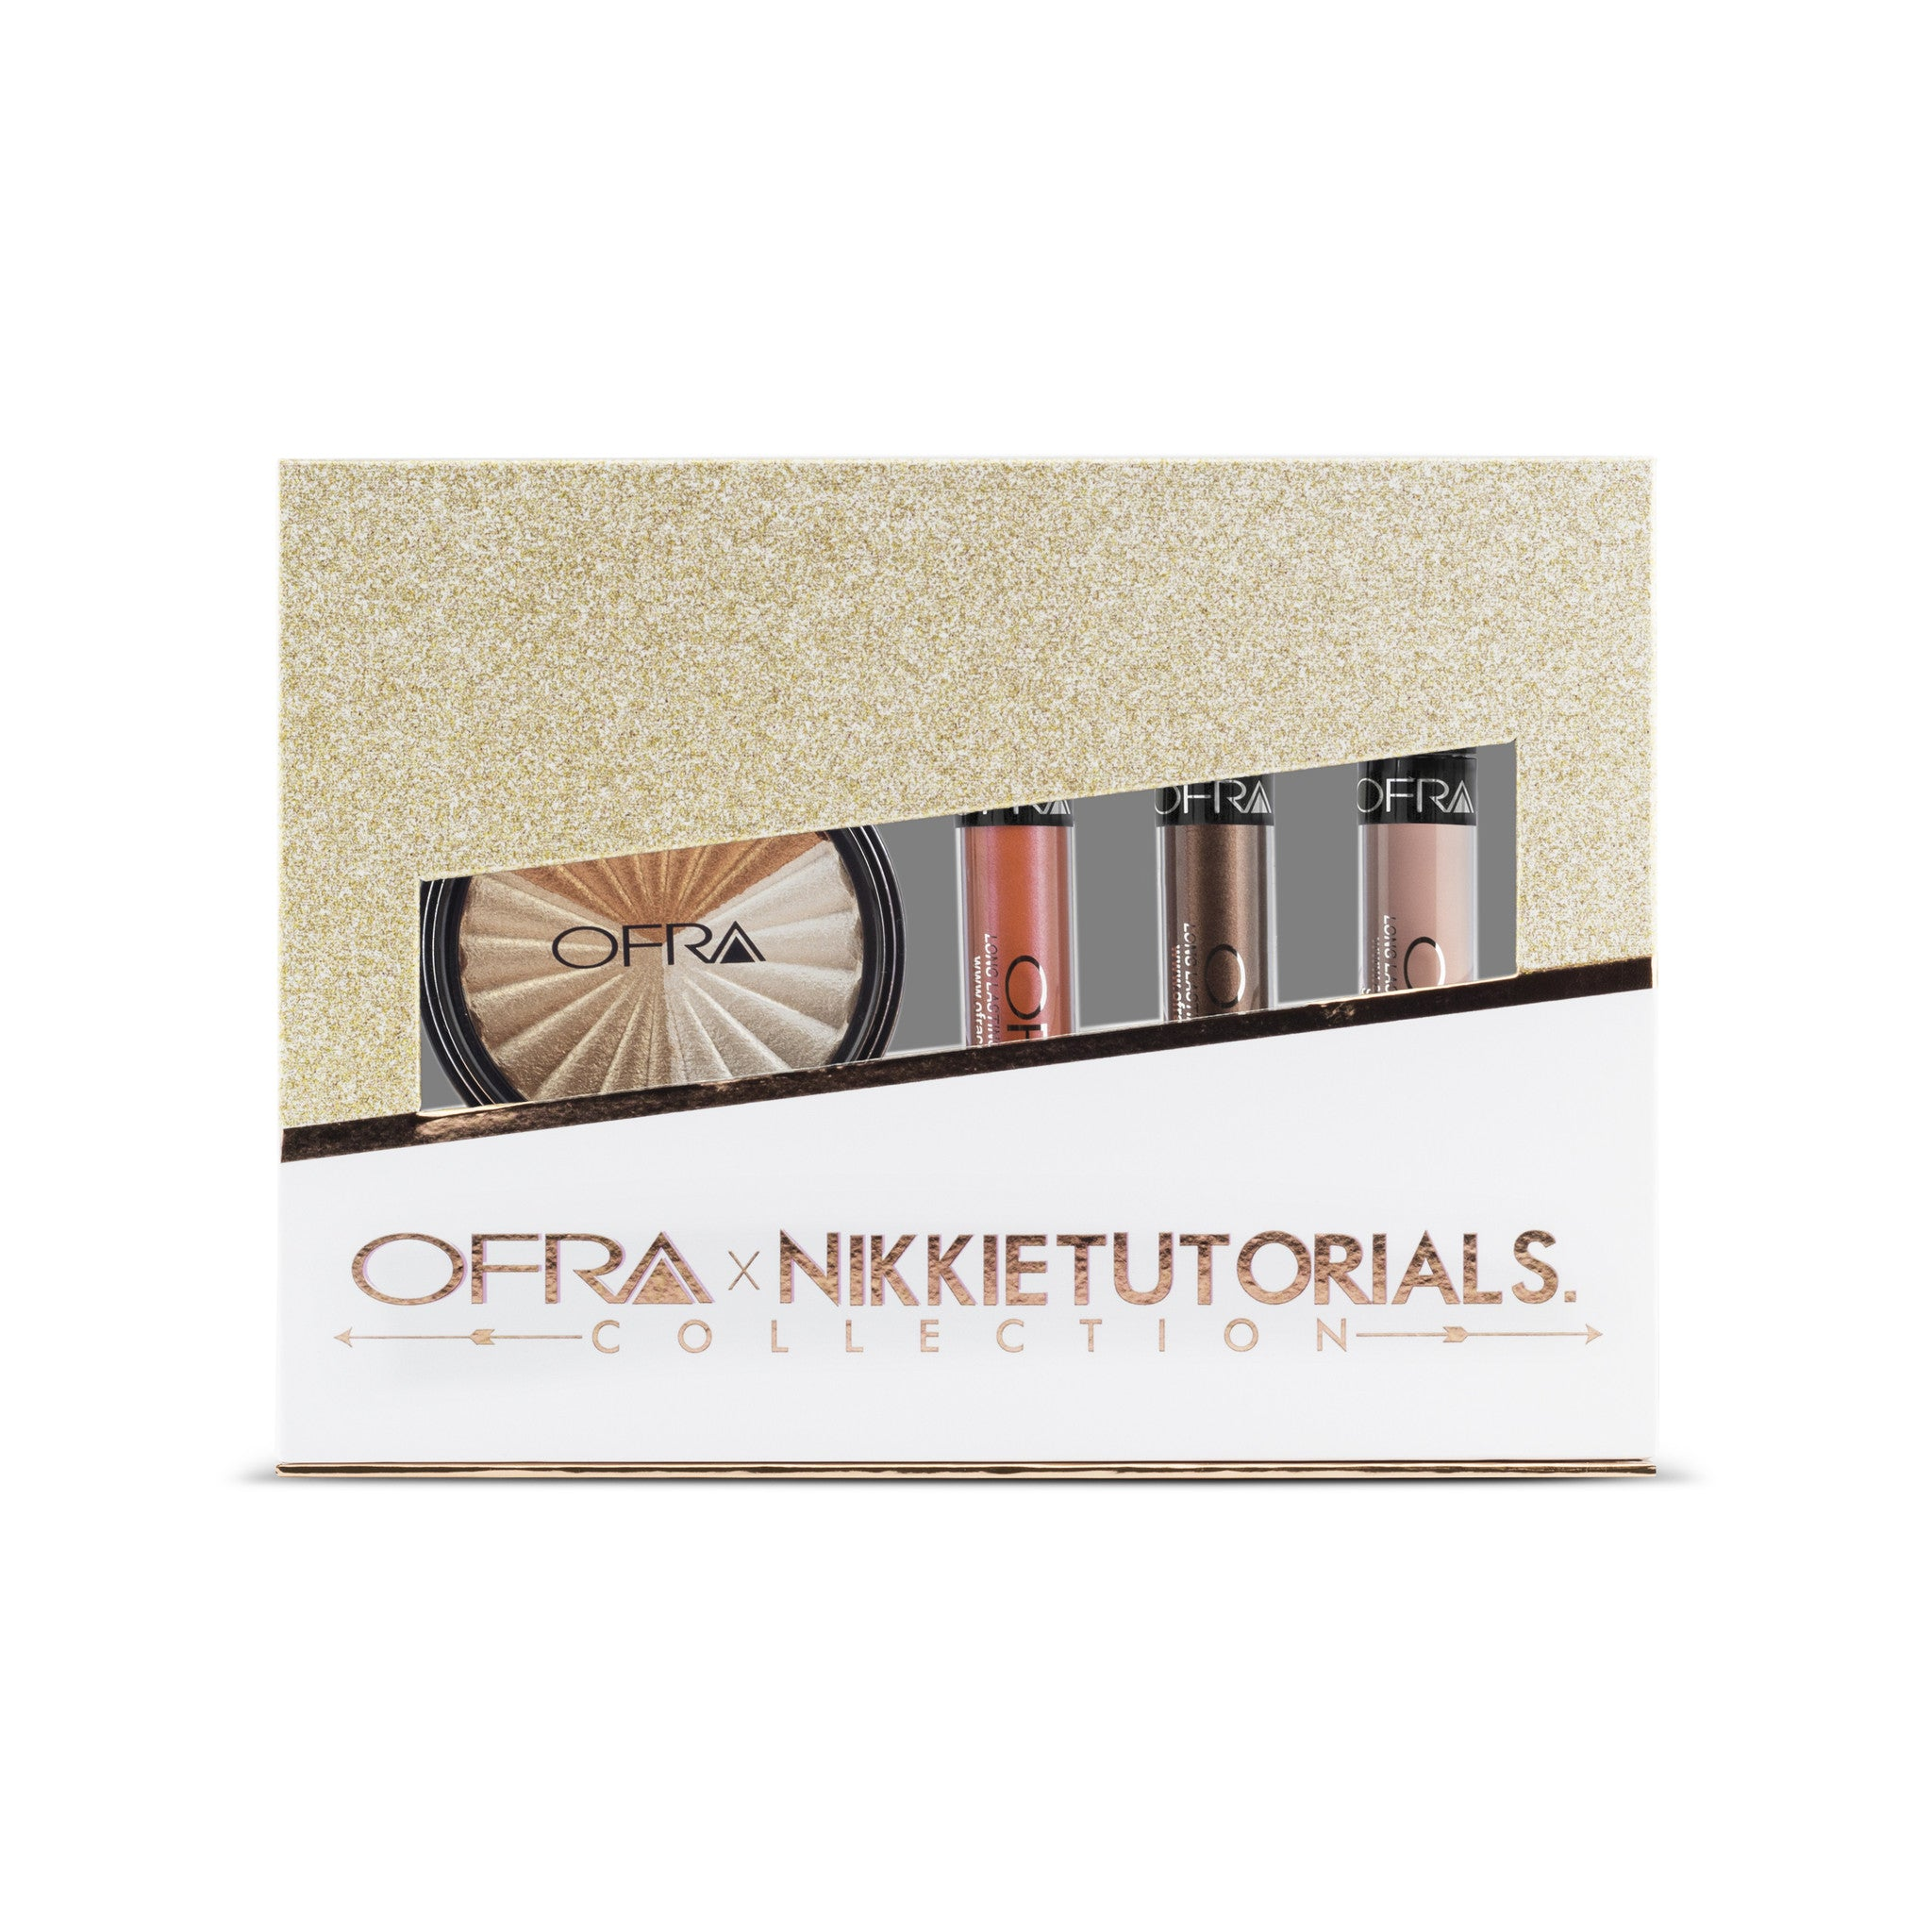 OFRA x NIKKIETUTORIALS Collection